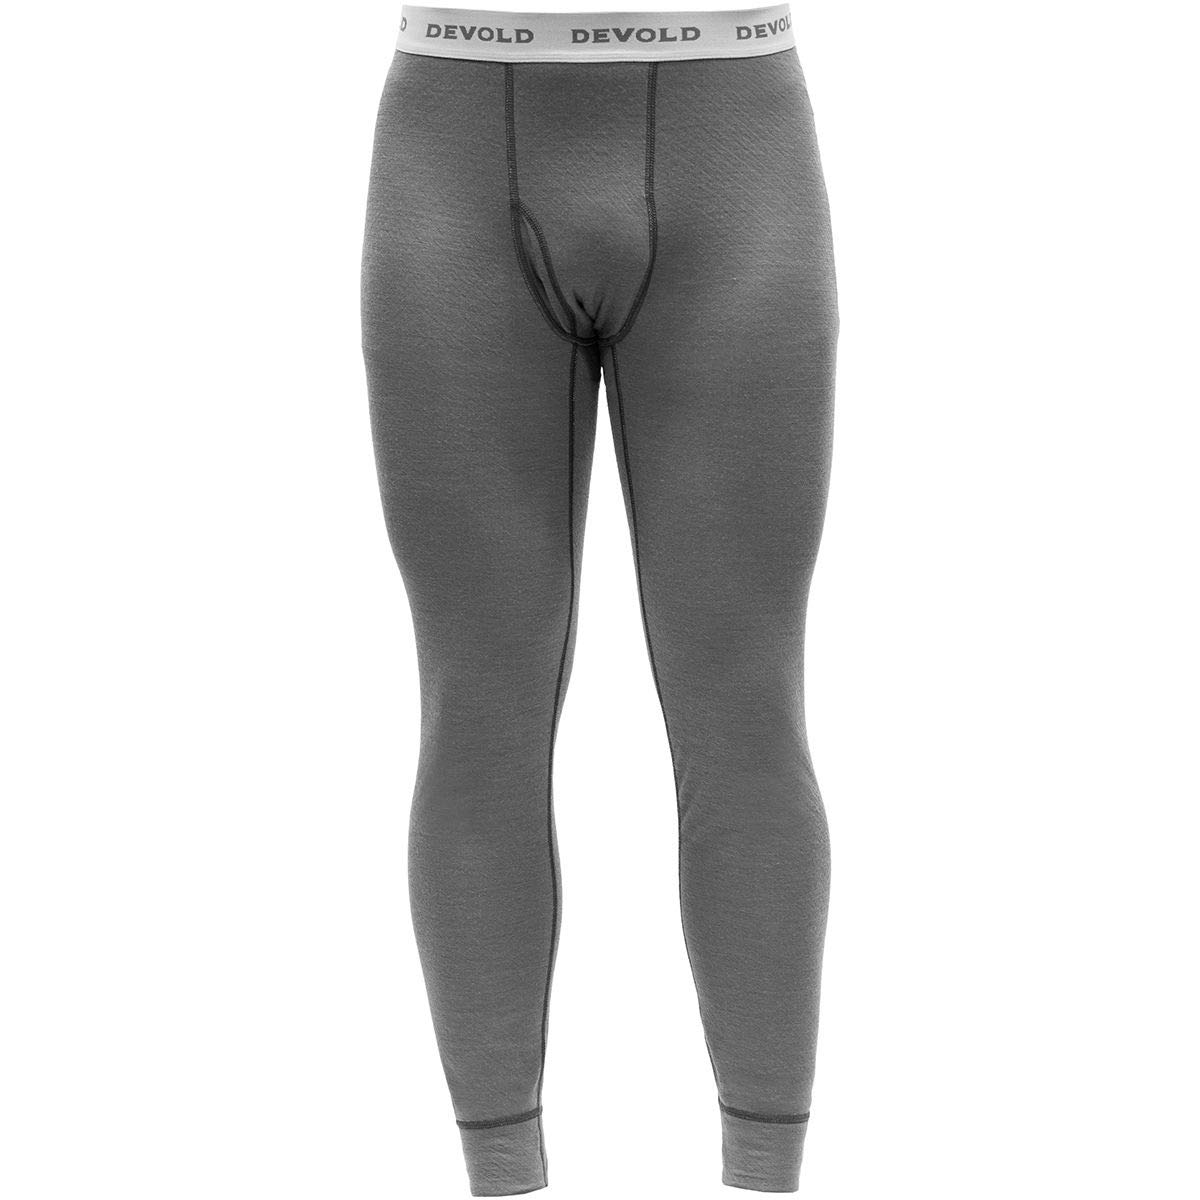 Devold Herren Duo Active Long Johns Hose Lange Unterhose Funktionsunterwäsche